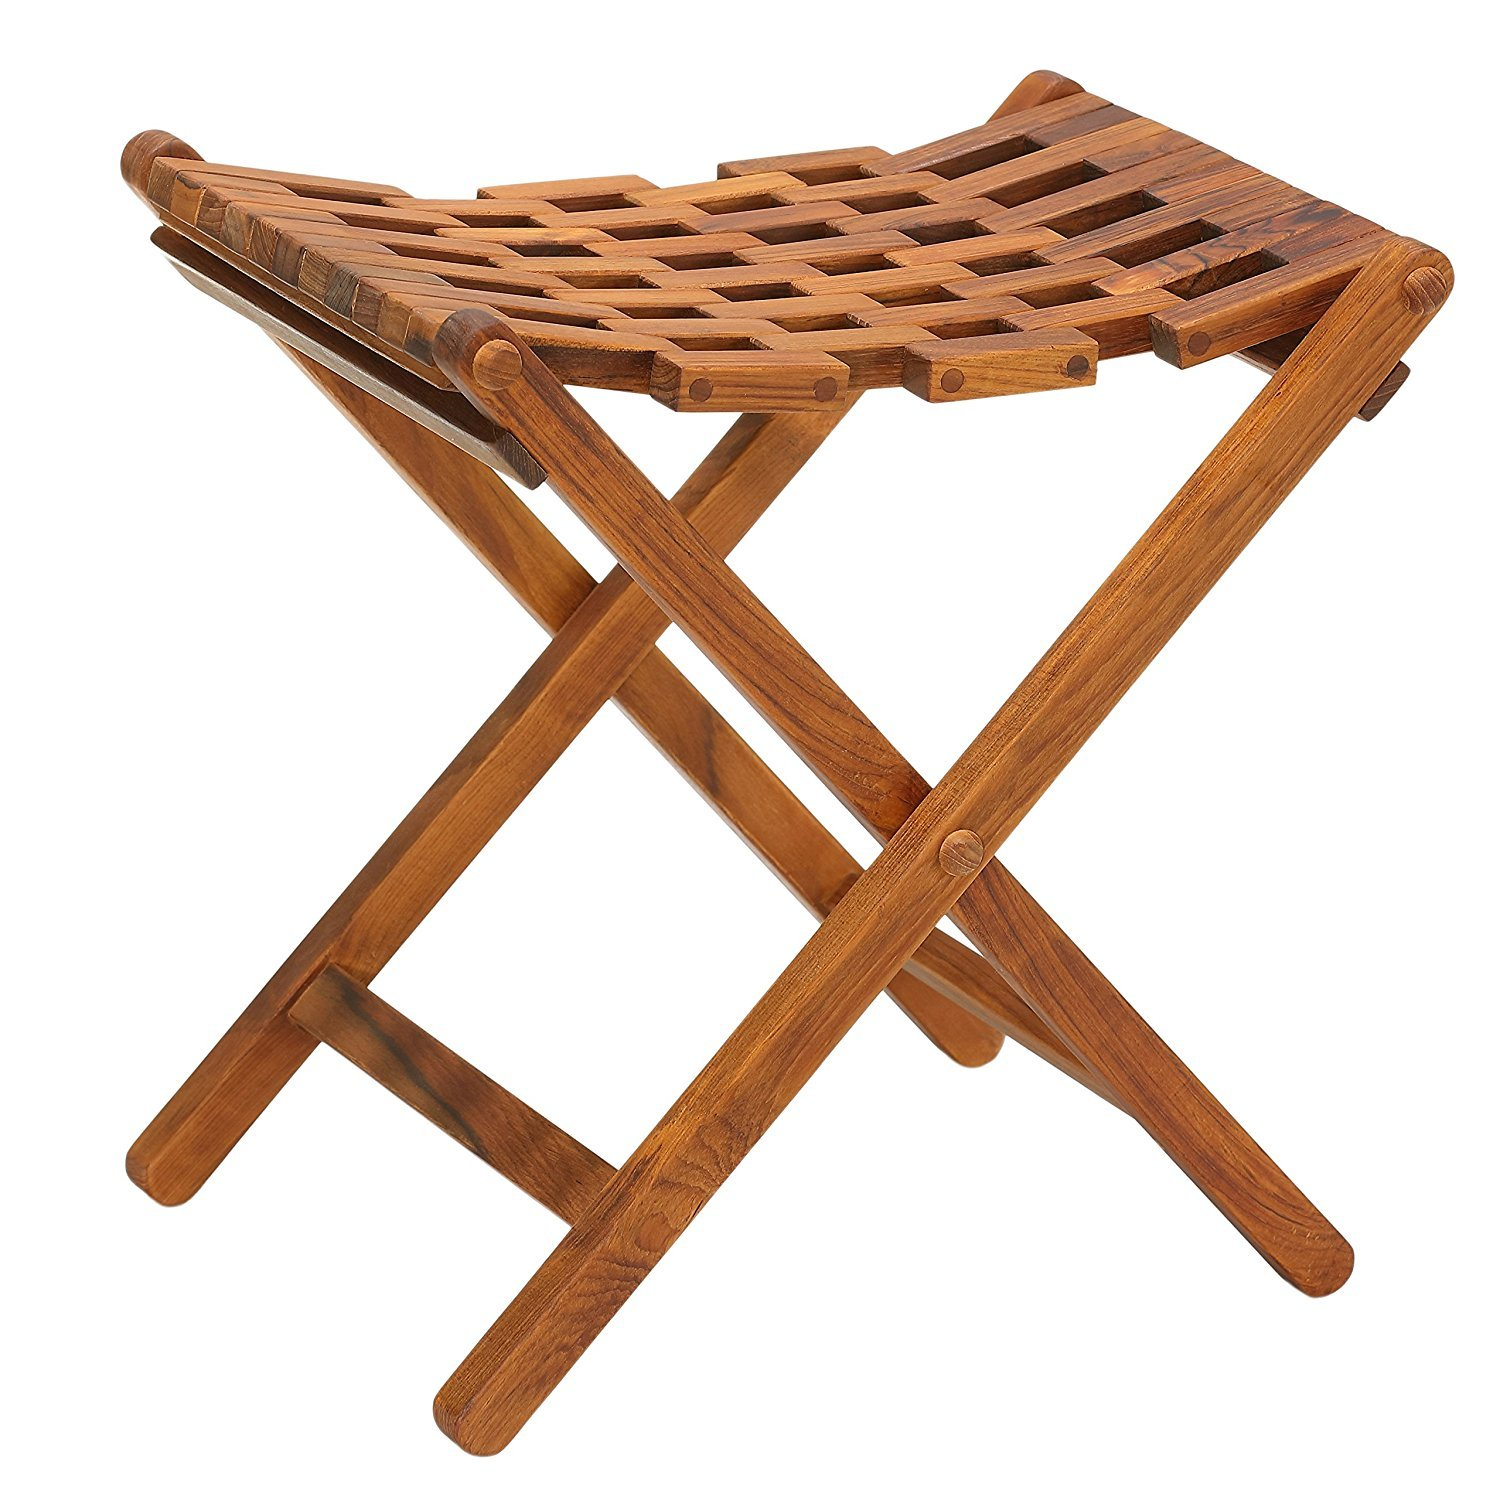 Bare Decor Mosaic Folding Stool in Solid Teak Wood BARE-AC4075